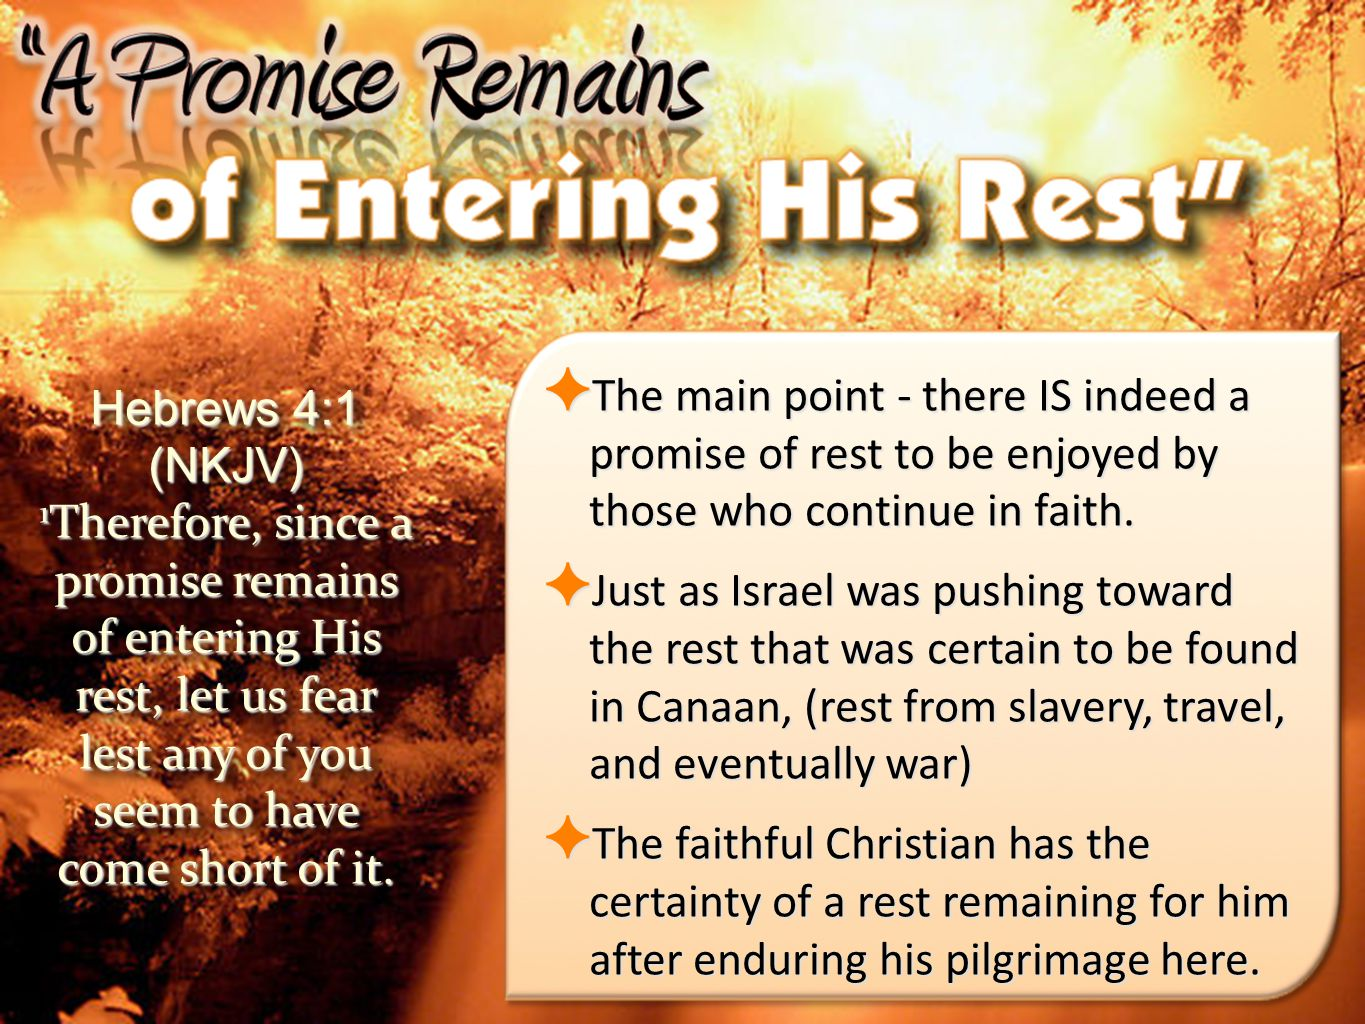 The main point - there IS indeed a promise of rest to be enjoyed by those who continue in faith.